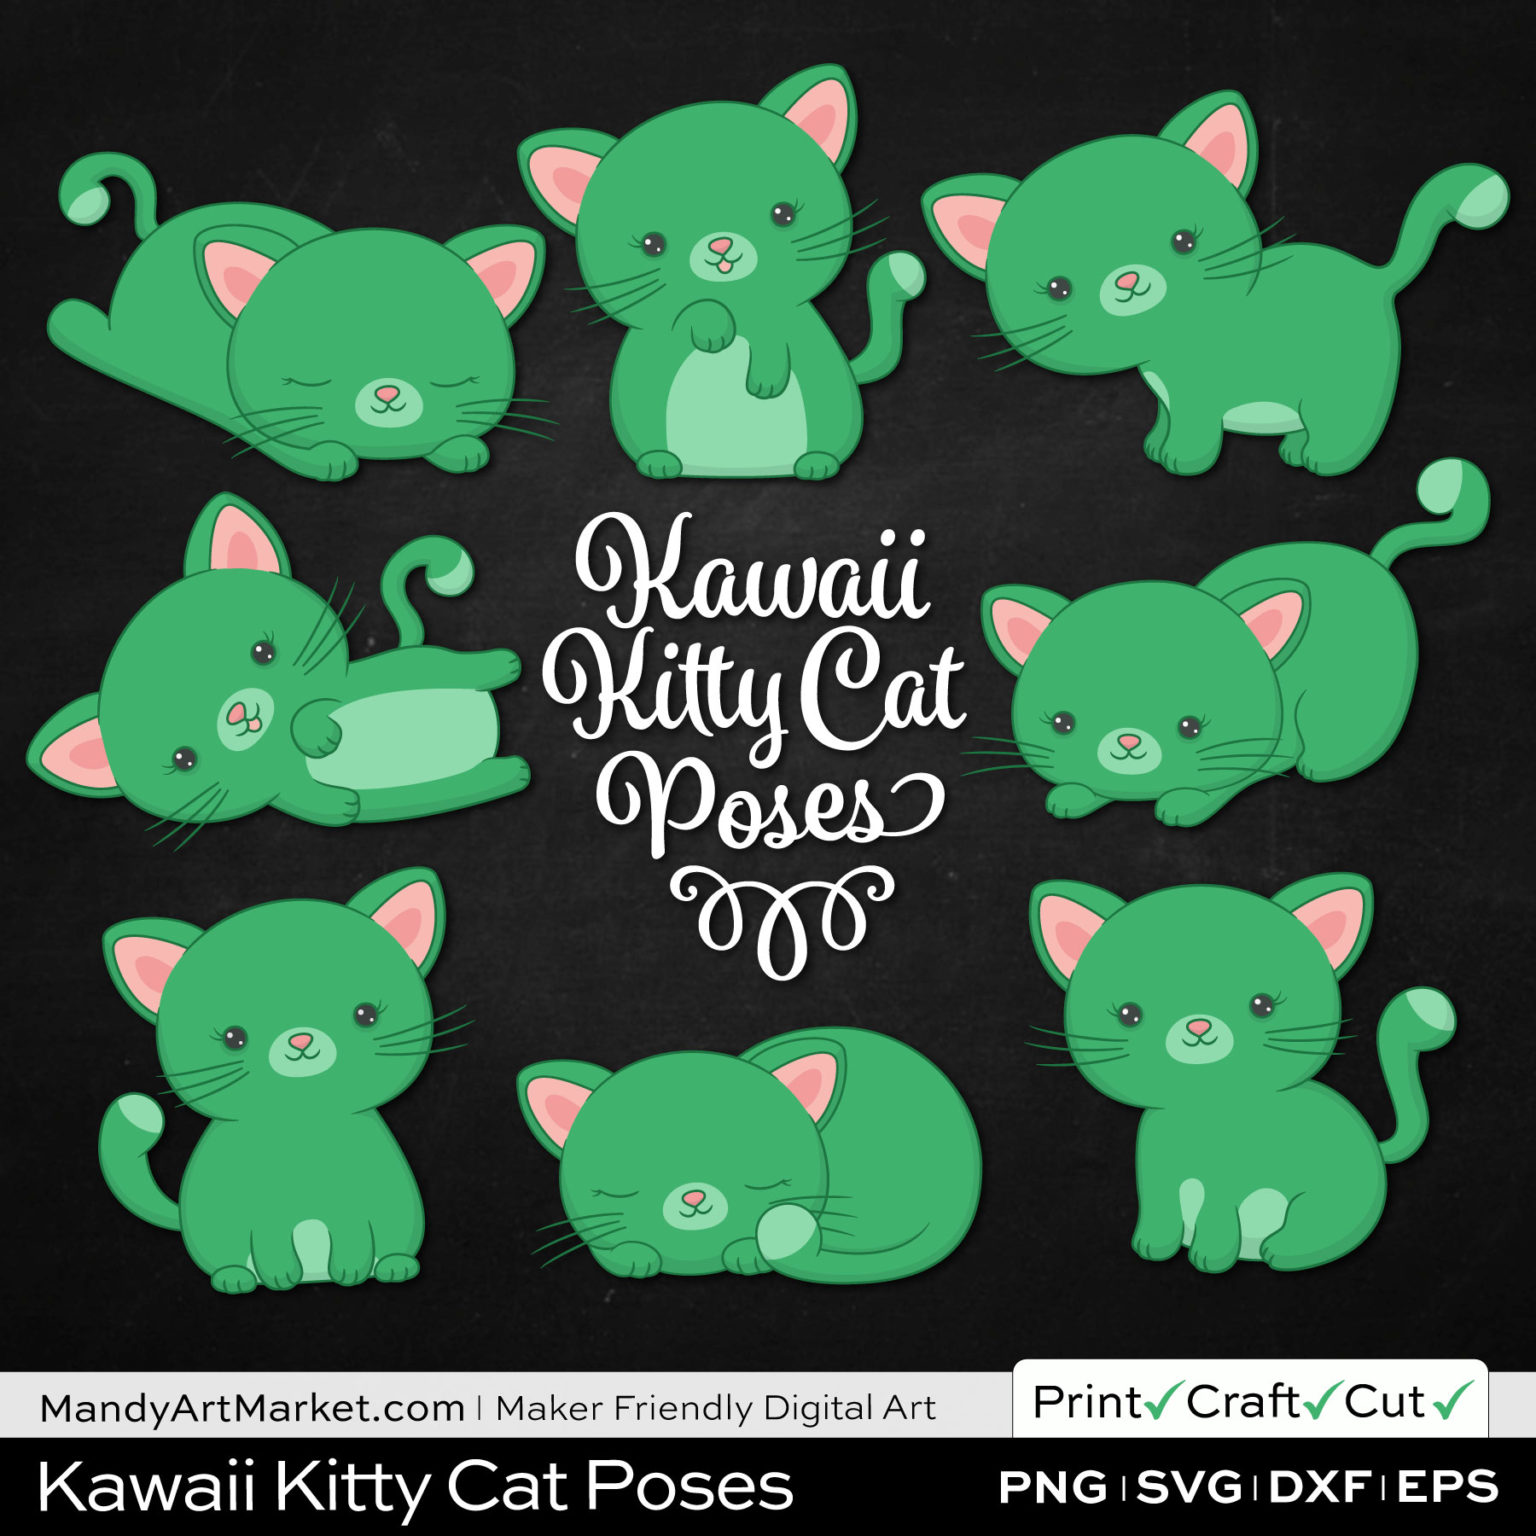 Kelly Green Kawaii Kitty Cat Poses Clipart on Black Background